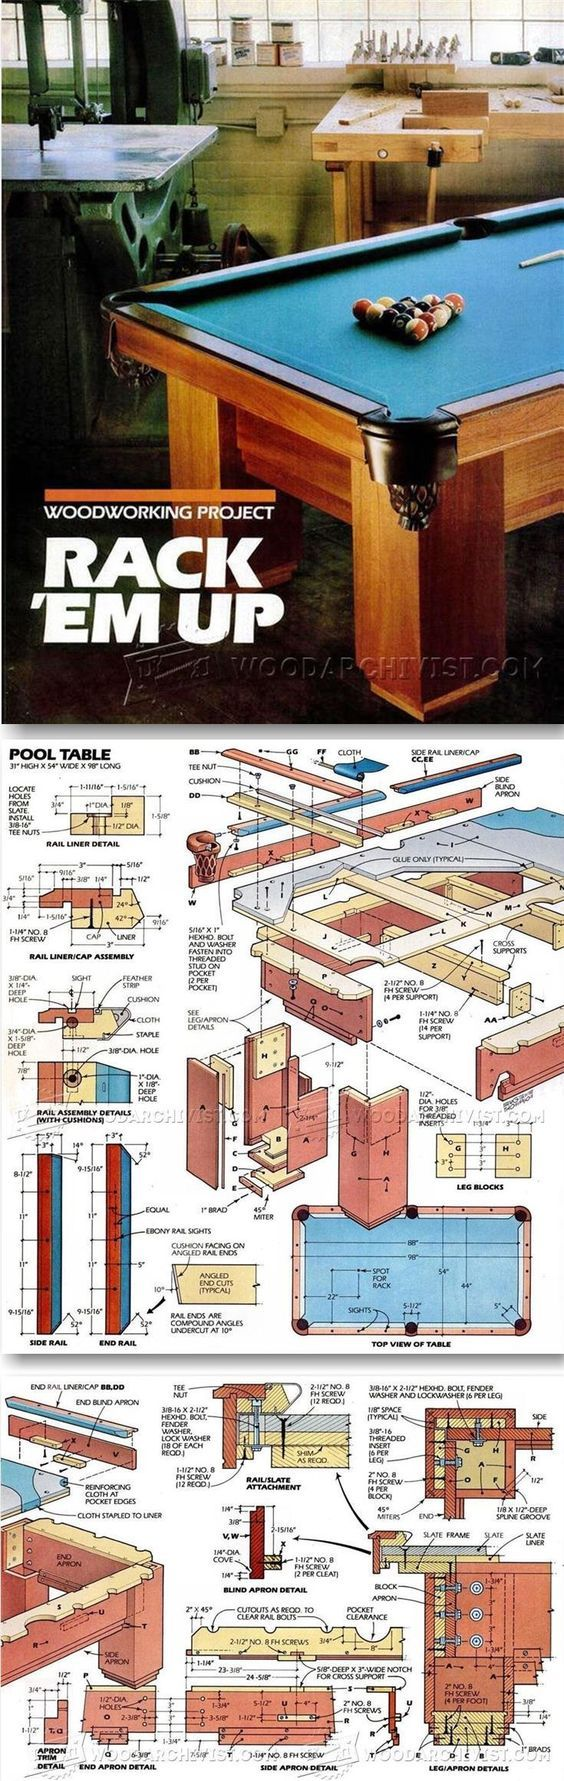 Build your own pool table plans - Homemade Pools Pool Table Plans